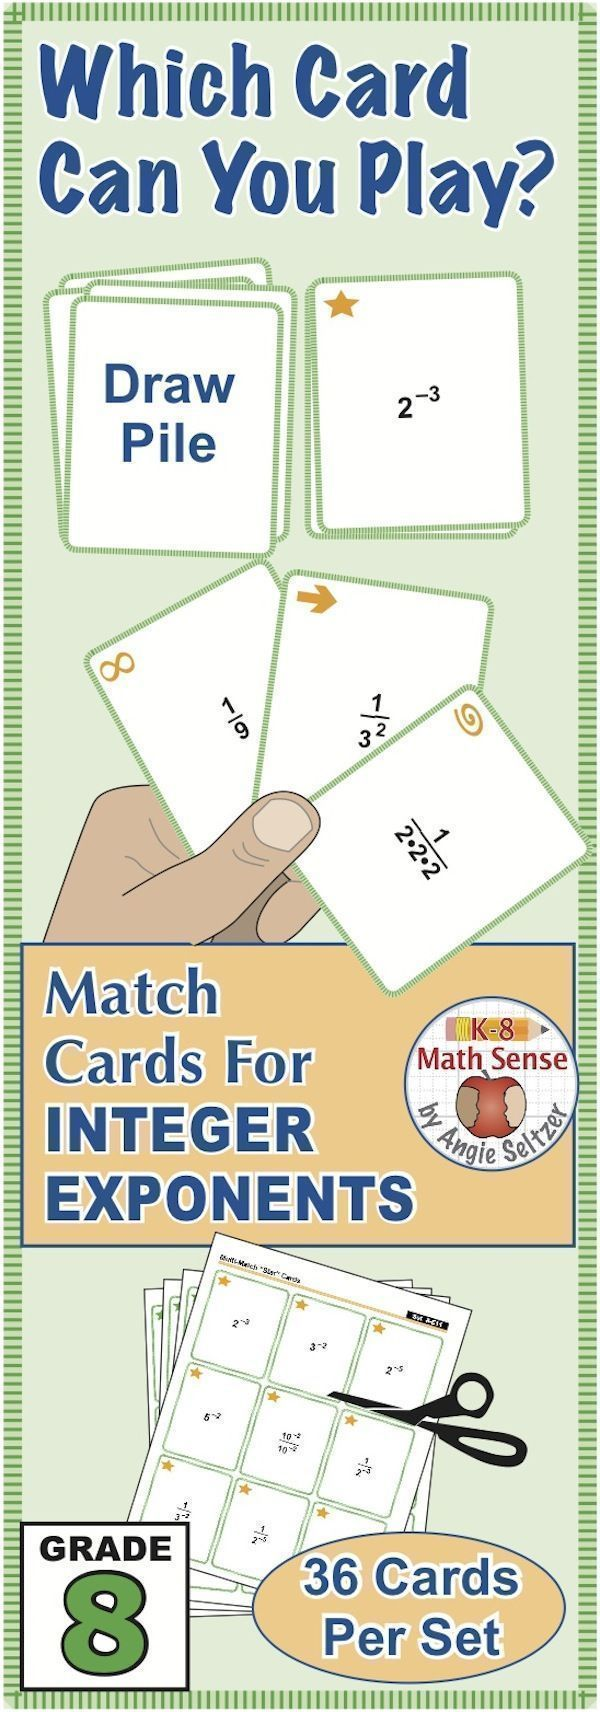 This FREE Grade 8 set of printable Multi-Match game cards helps students simplify expressions with negative integer exponents. Just print on five sheets of paper and have students cut the cards. Choose from four fun, familiar games for 1-4 players. ~by An